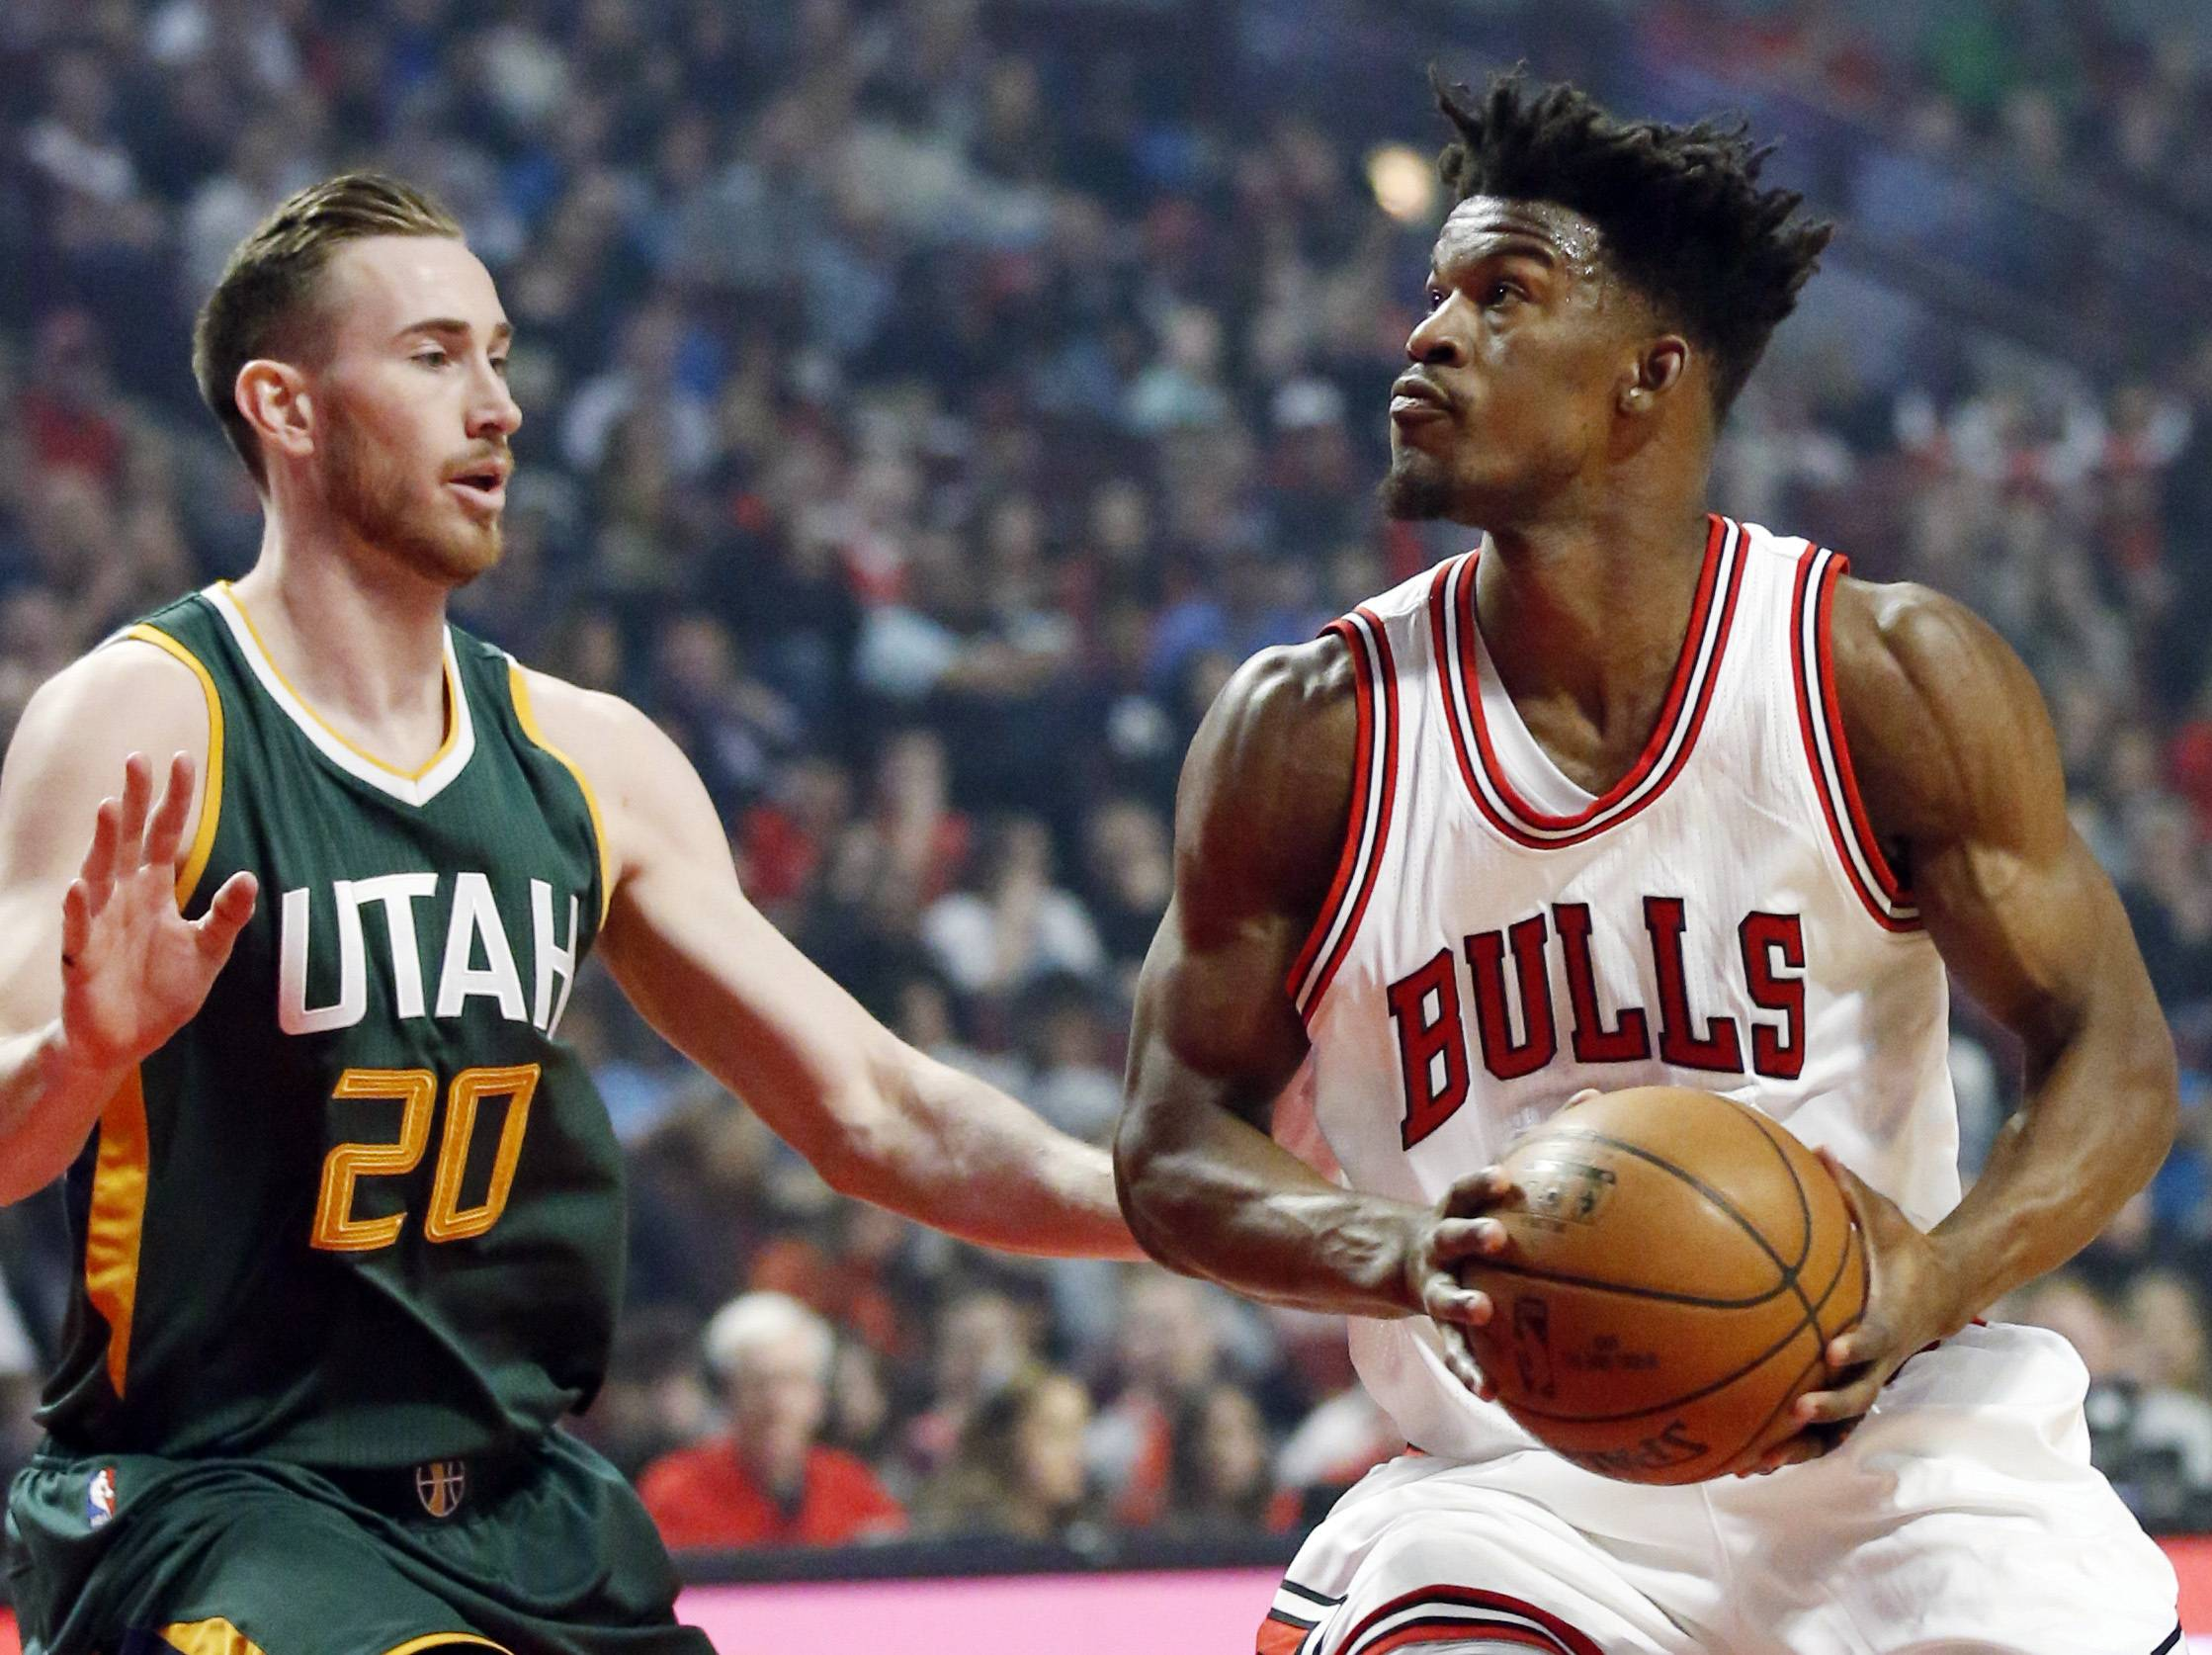 Chicago Bulls guard/forward Jimmy Butler, right, looks to the basket as Utah Jazz guard/forward Gordon Hayward guards during the first half of an NBA basketball game Saturday, March 18, 2017, in Chicago.